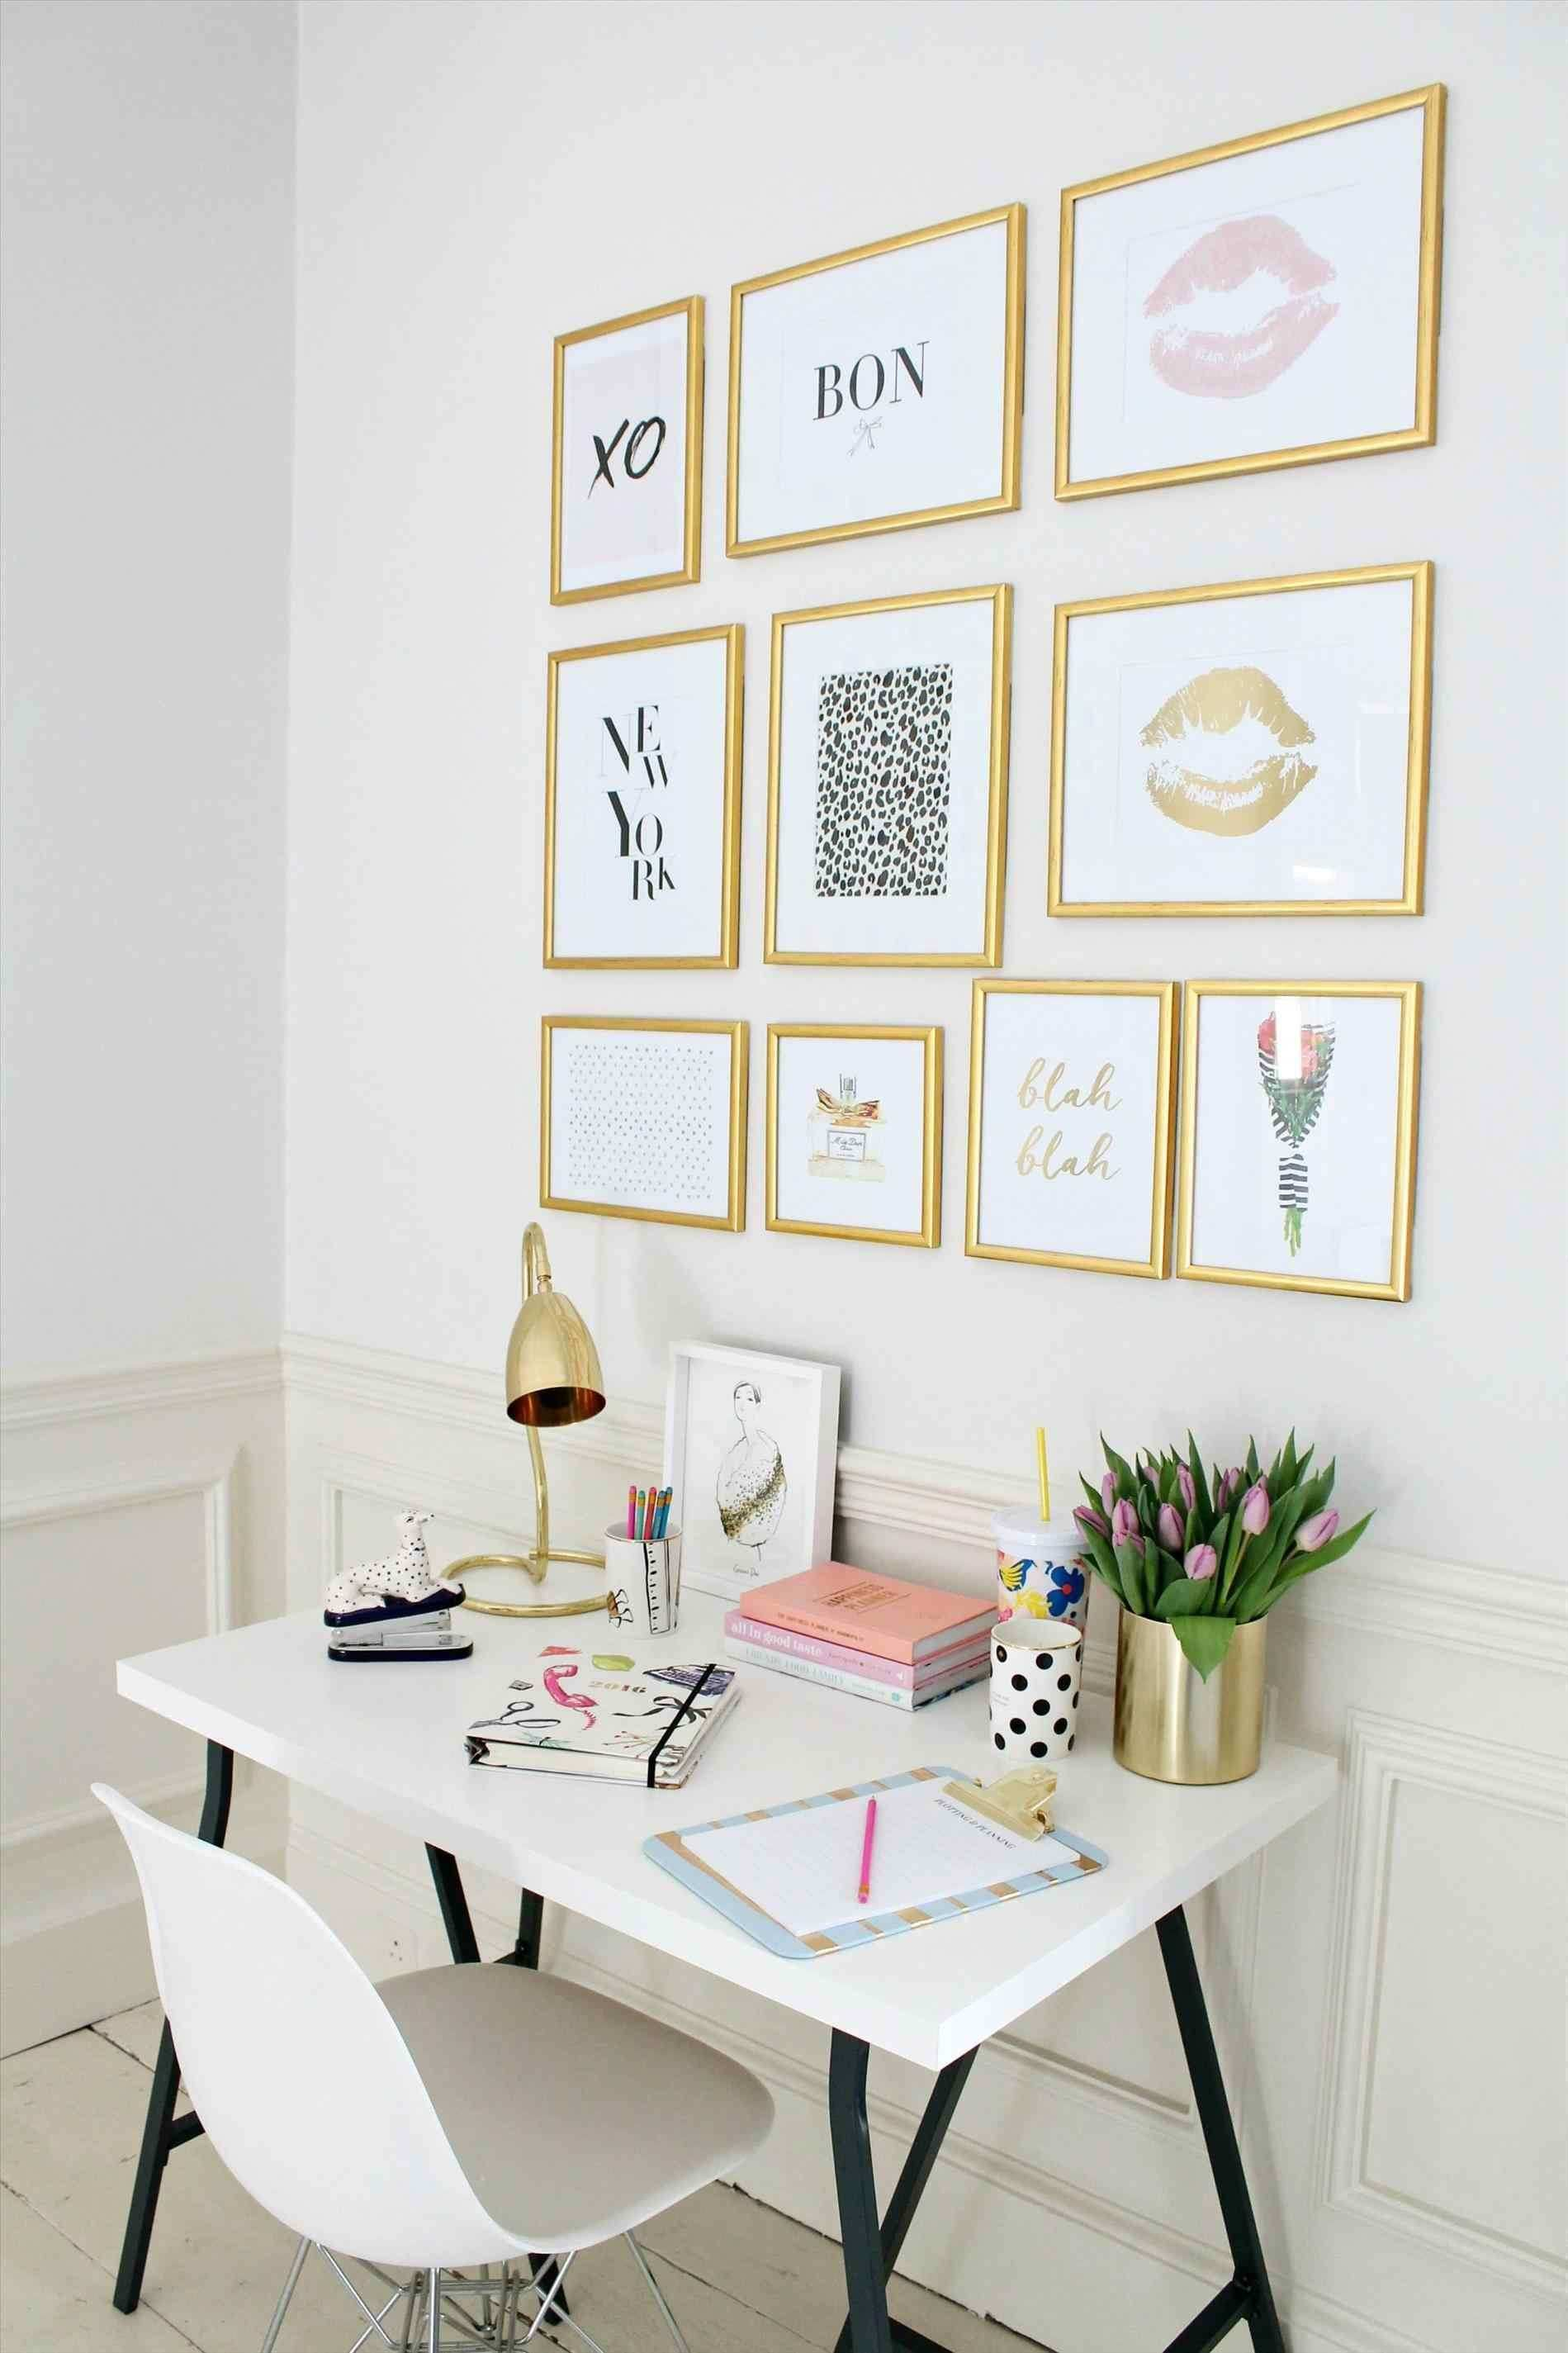 How To Hang Stuff Without Damaging Walls To Hang Things A Wooden